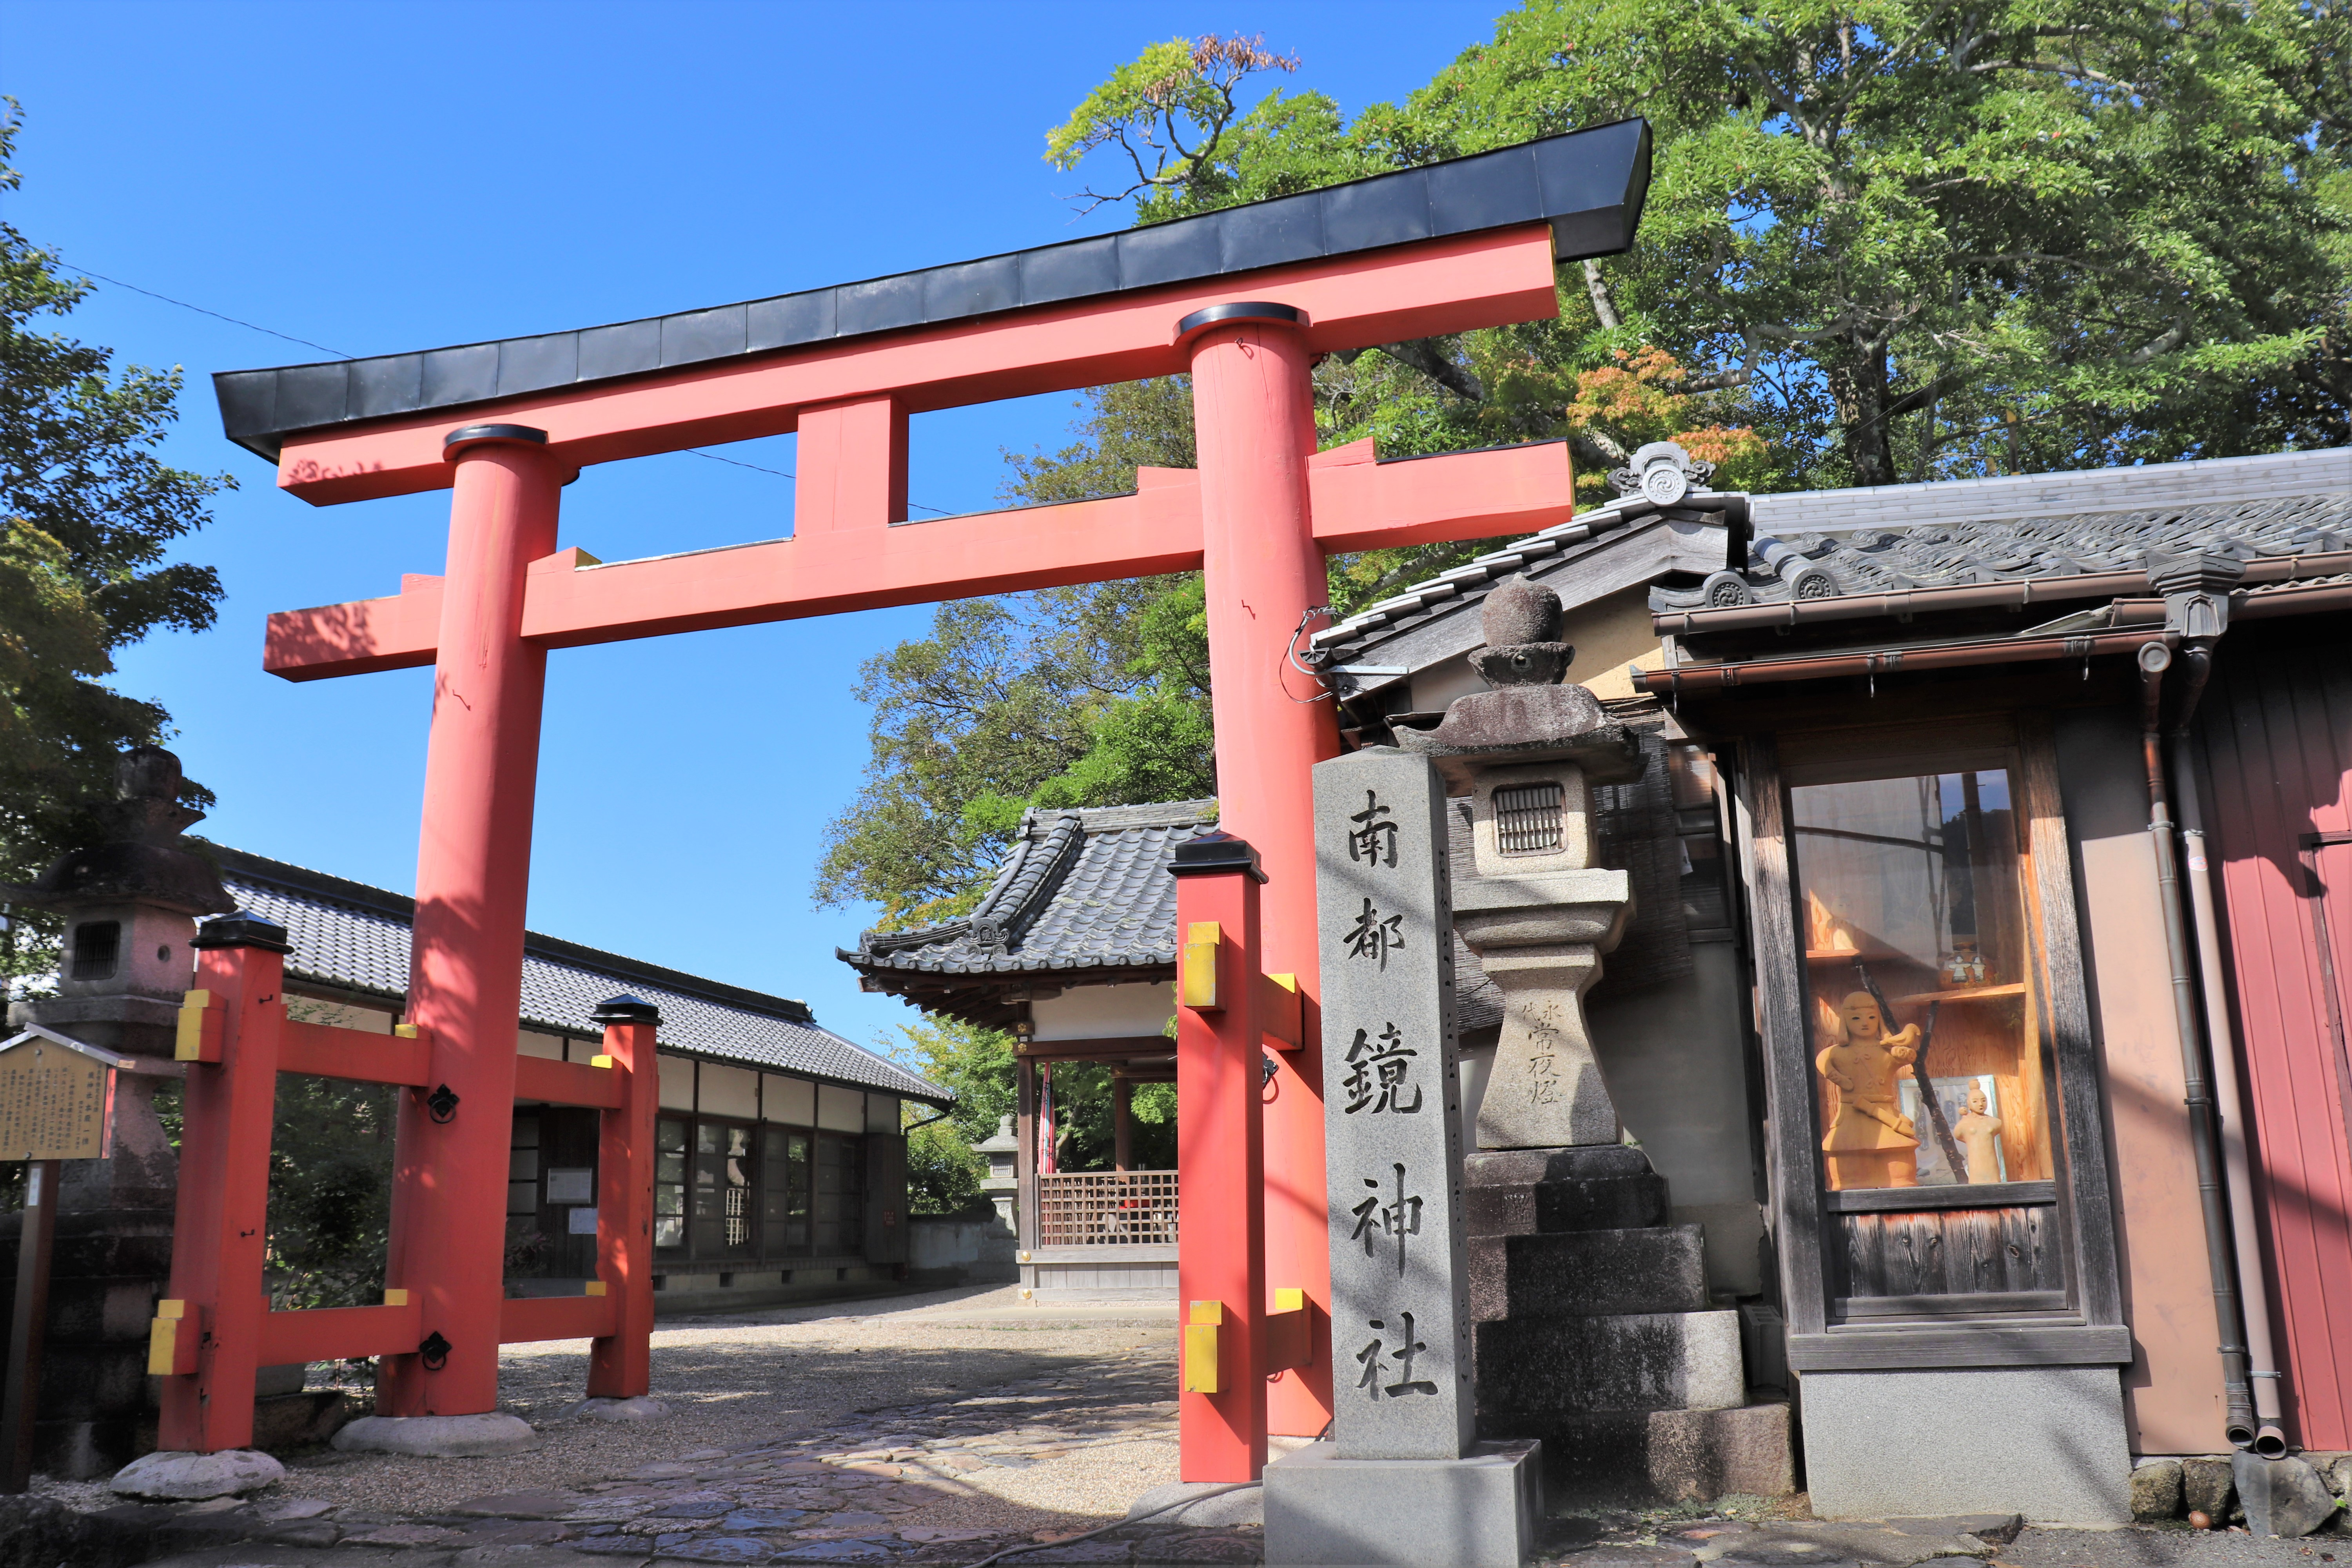 vermillion torii at the entrance of Kagami shrine in nara